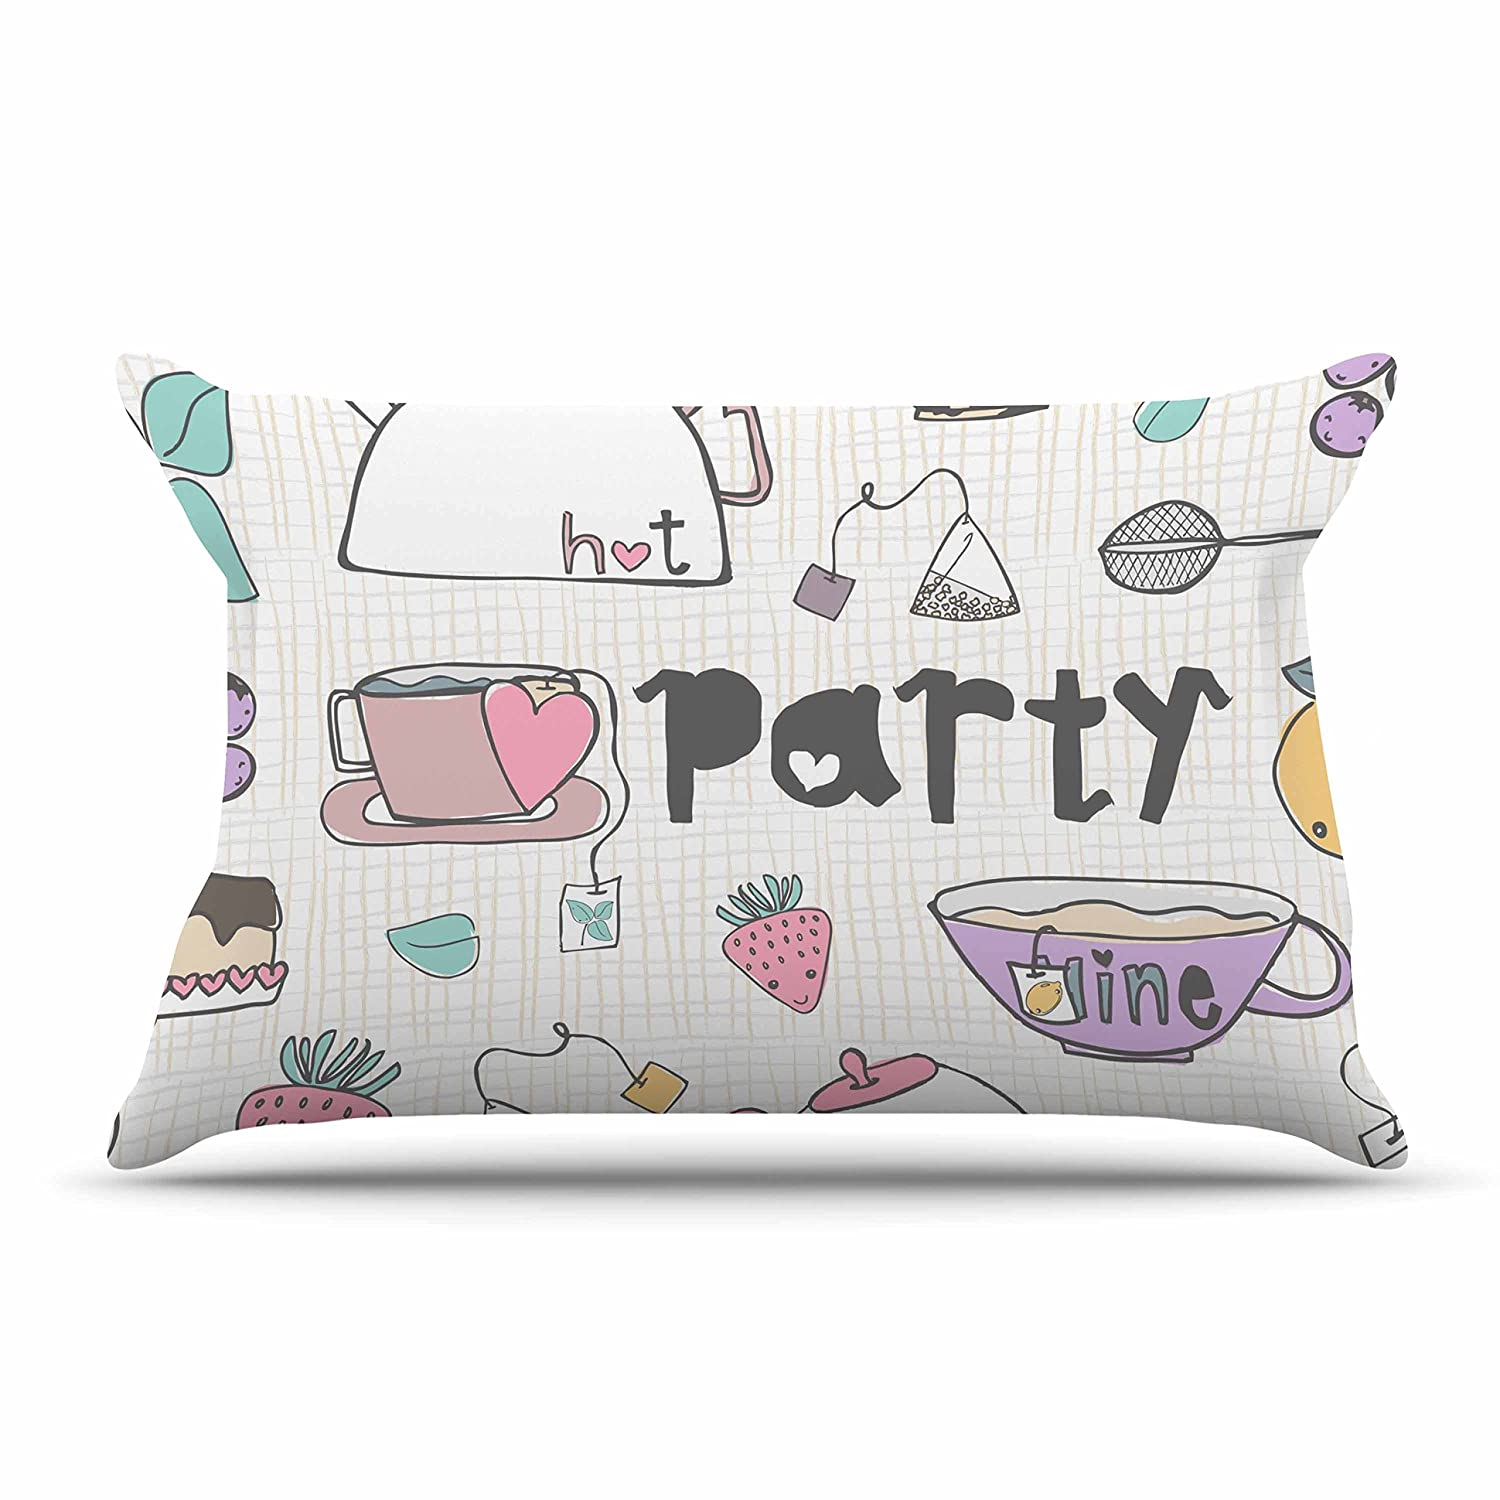 30 X 20 30 by 20-Inch Kess InHouse MaJoBV Tea Party White Multicolor Standard Pillow Case